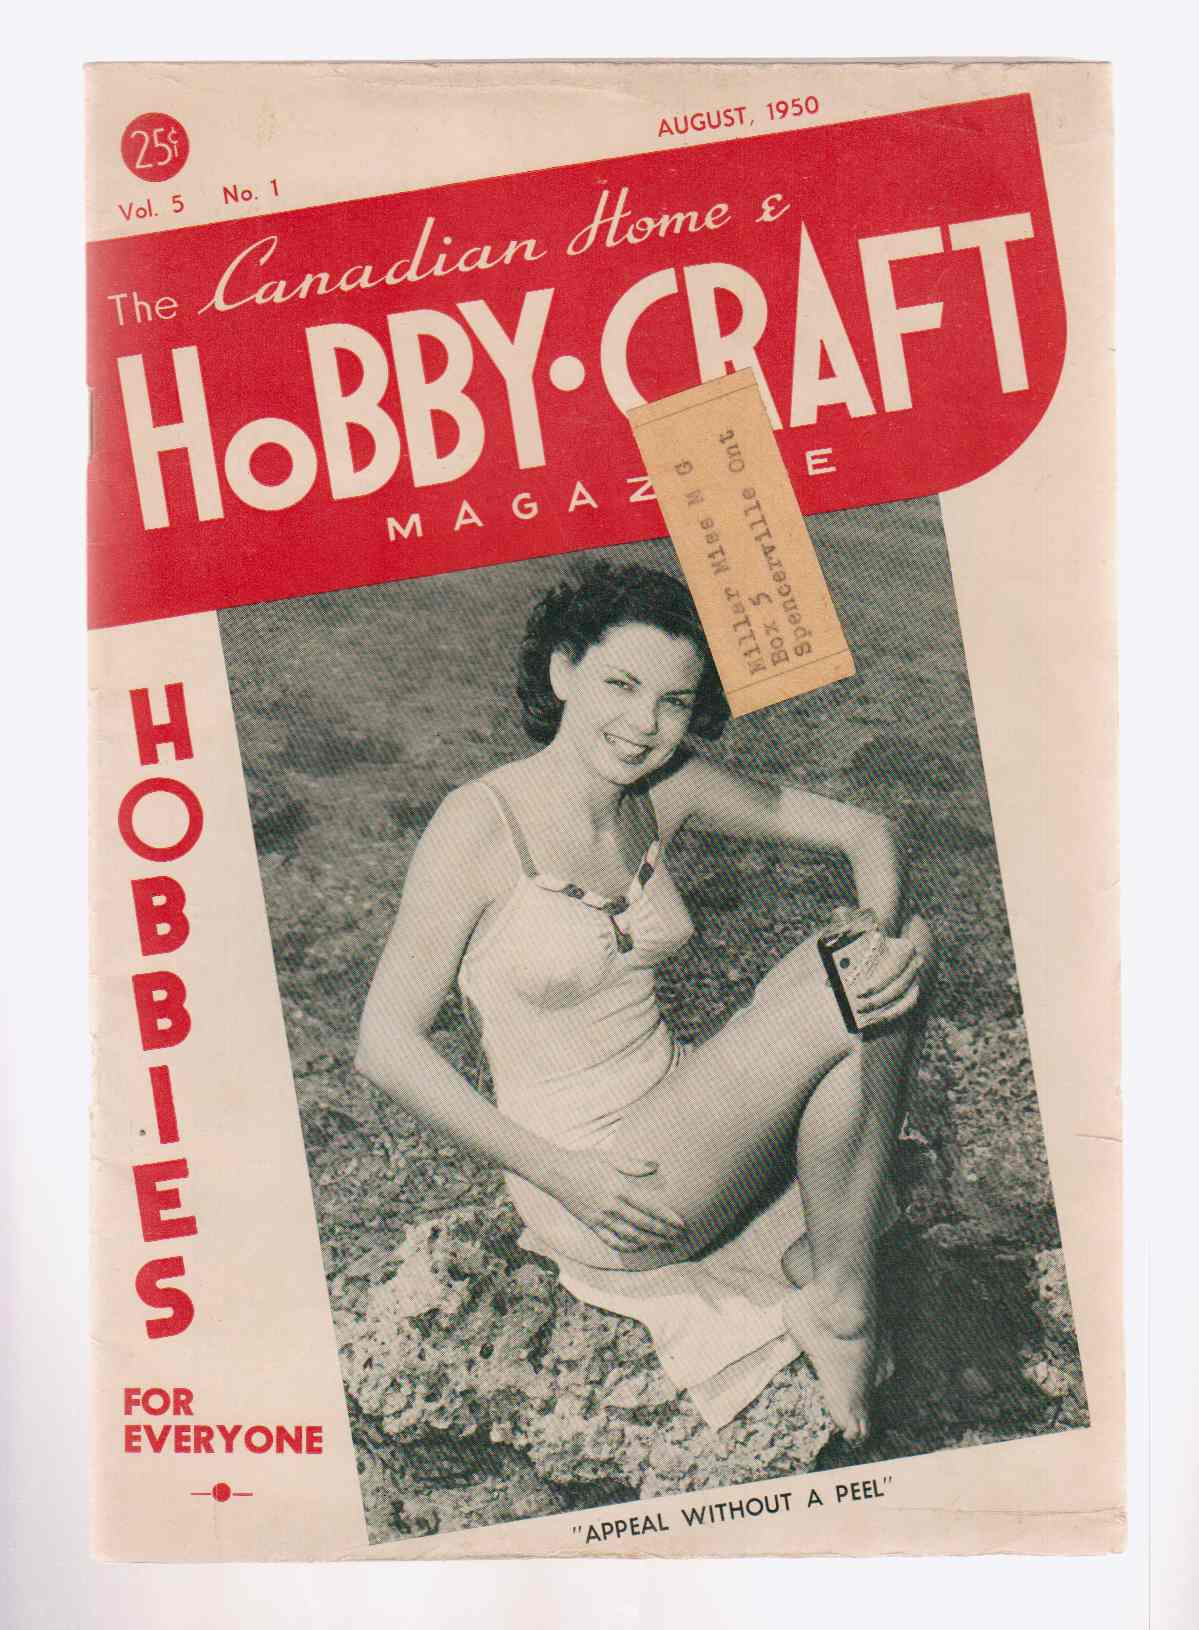 Image for The Canadian Home and Hobby-Craft Magazine July - August 1950 Vol. 5 No. 1